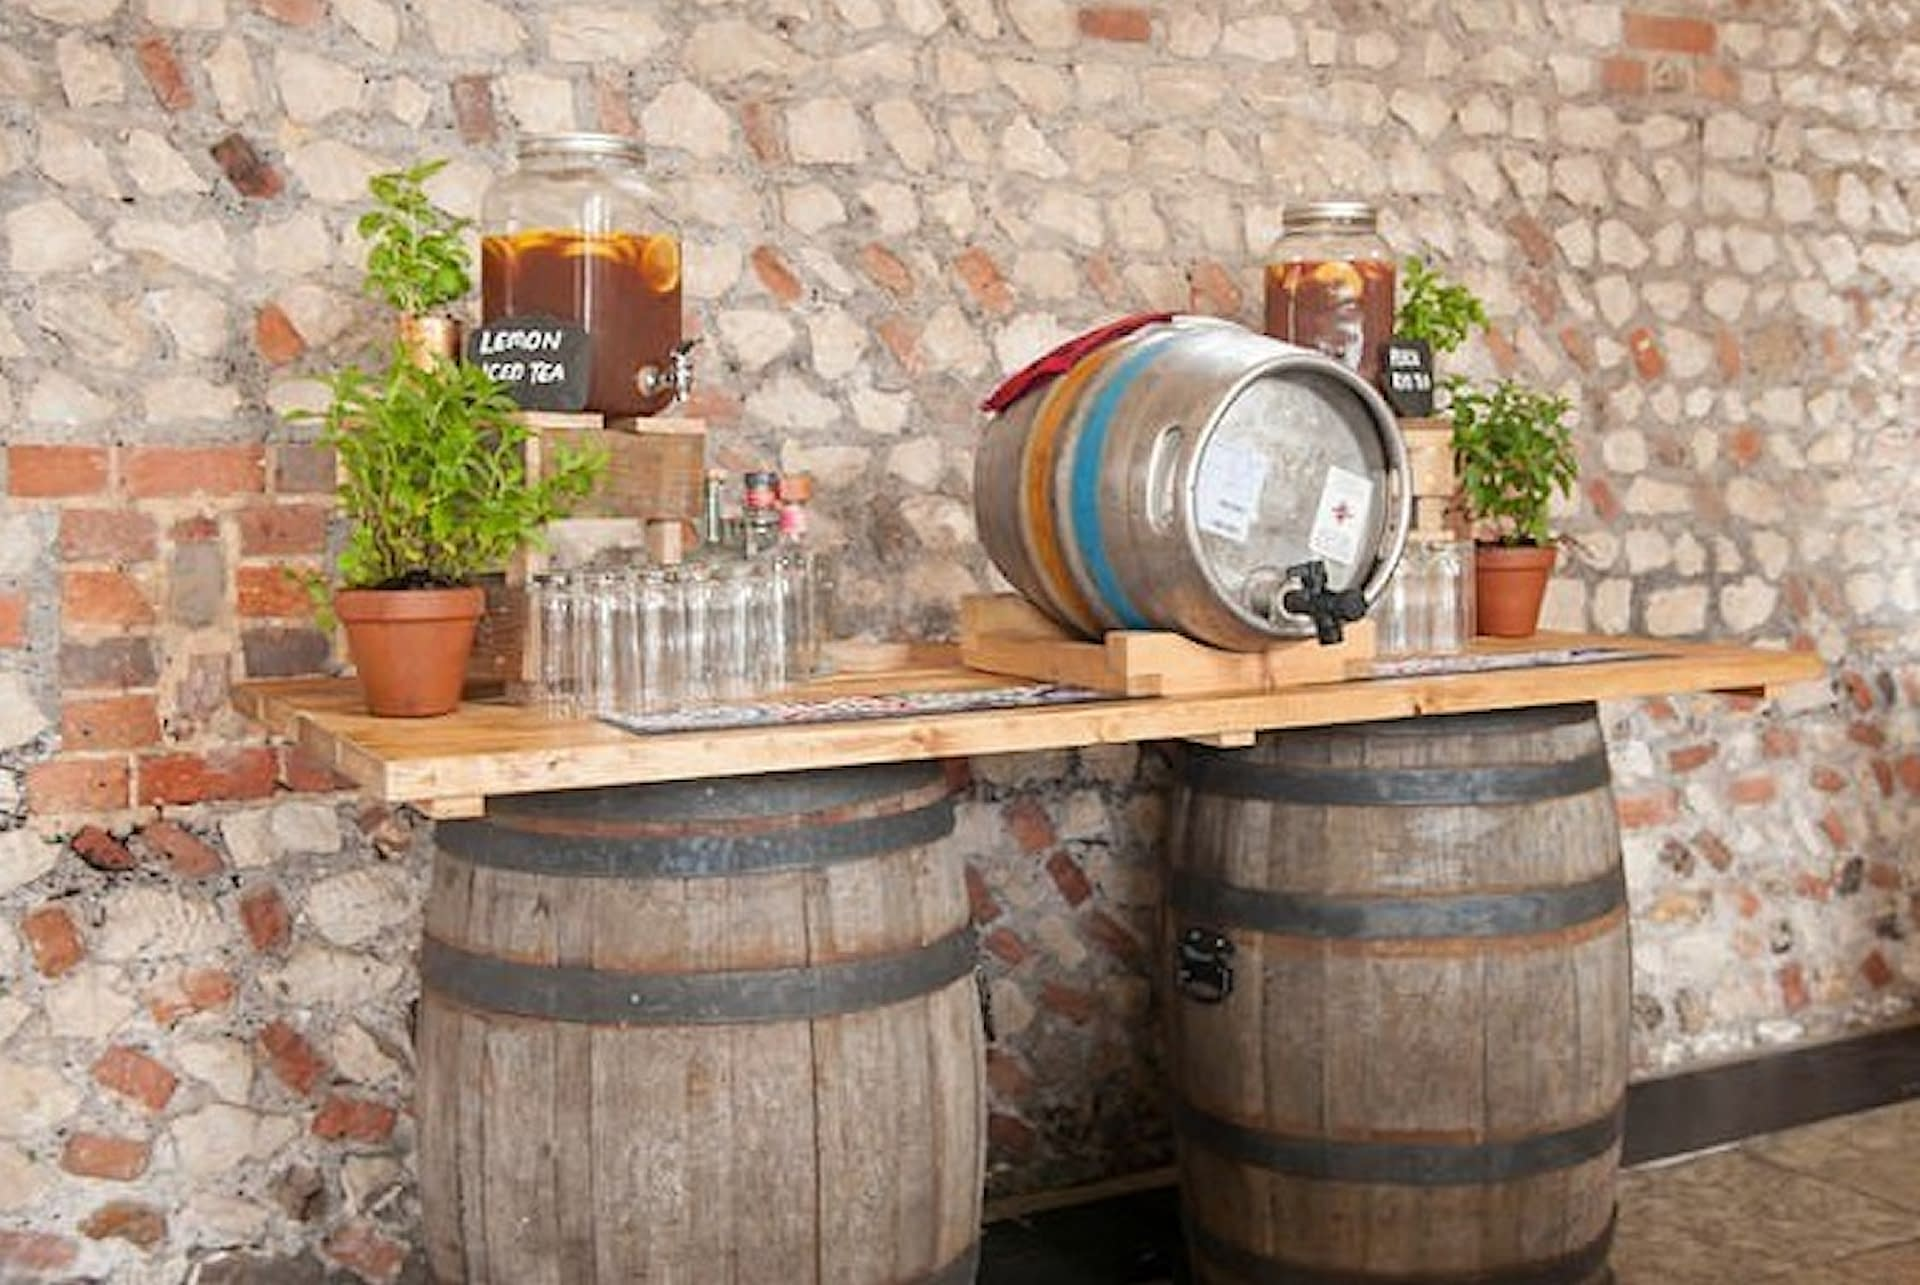 Country barn wedding at Farbridge Sussex with barrel bar prop dressed with beer barrel and pretty punch jars